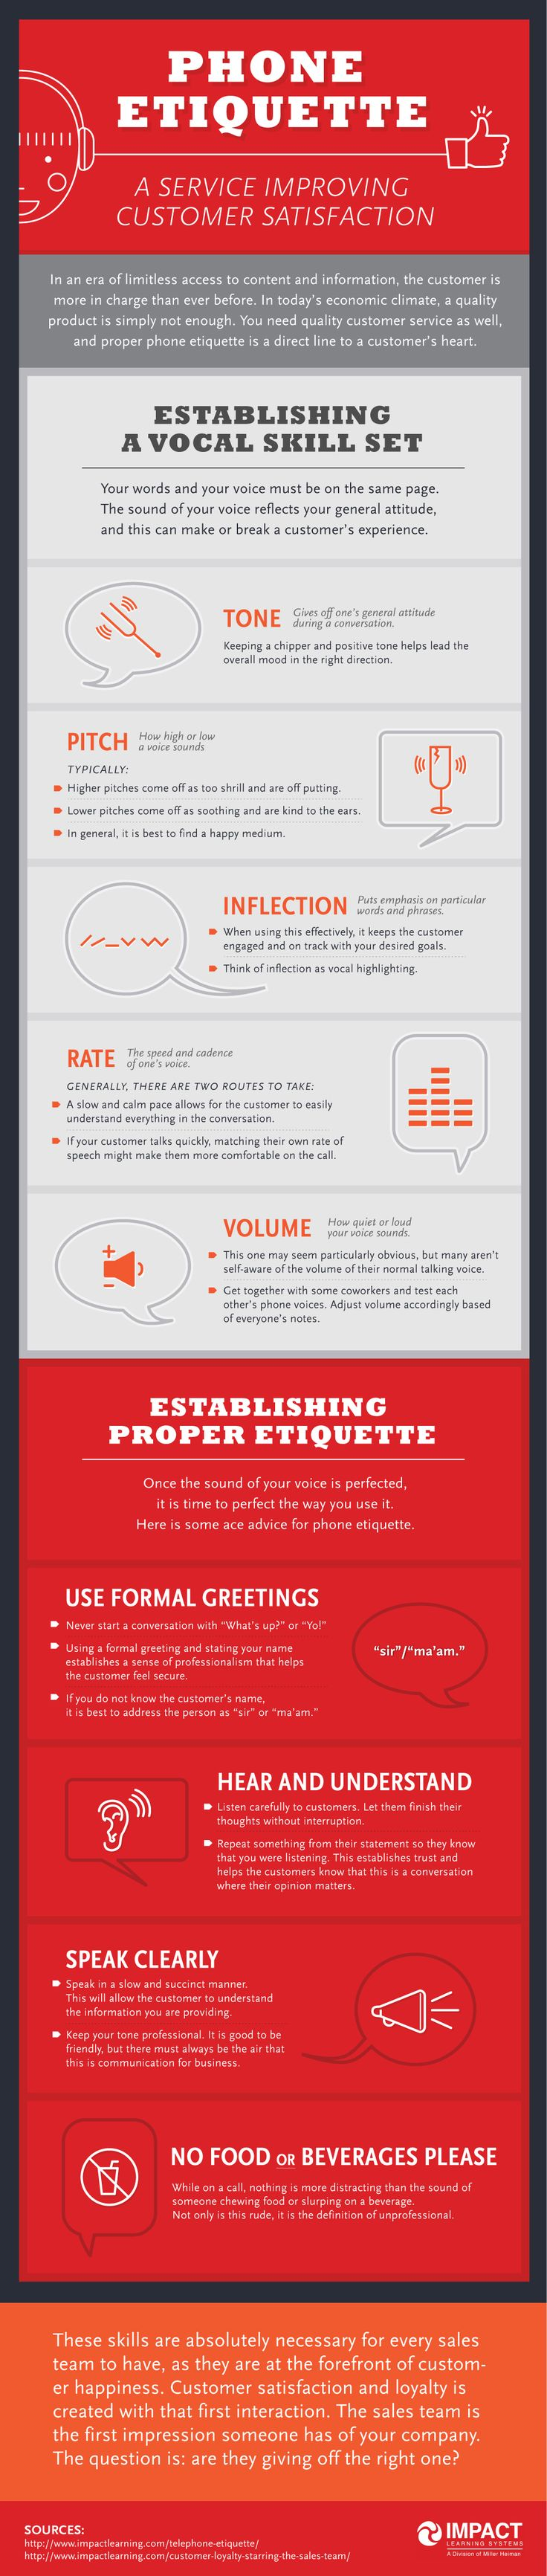 best ideas about customer service customer infographic phone etiquette to improve customer service not everybody has great phone skills so these tips could be very helpful to somebody